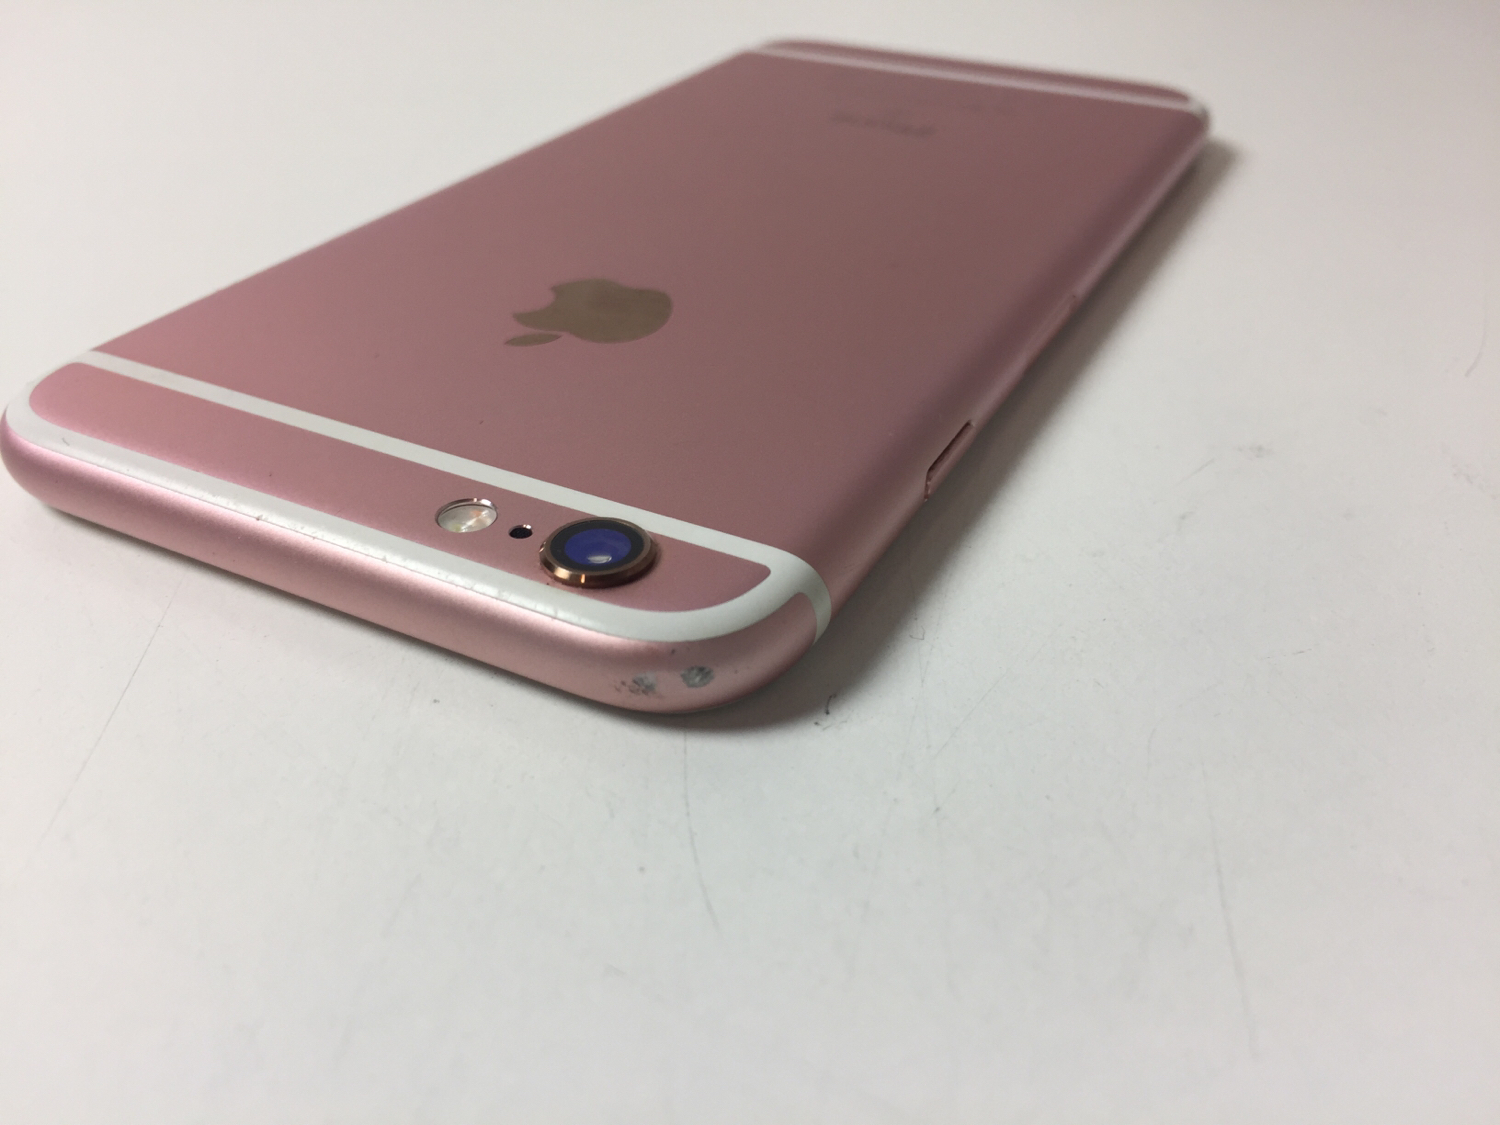 iPhone 6S 16GB, 16GB, Rose Gold, Afbeelding 3